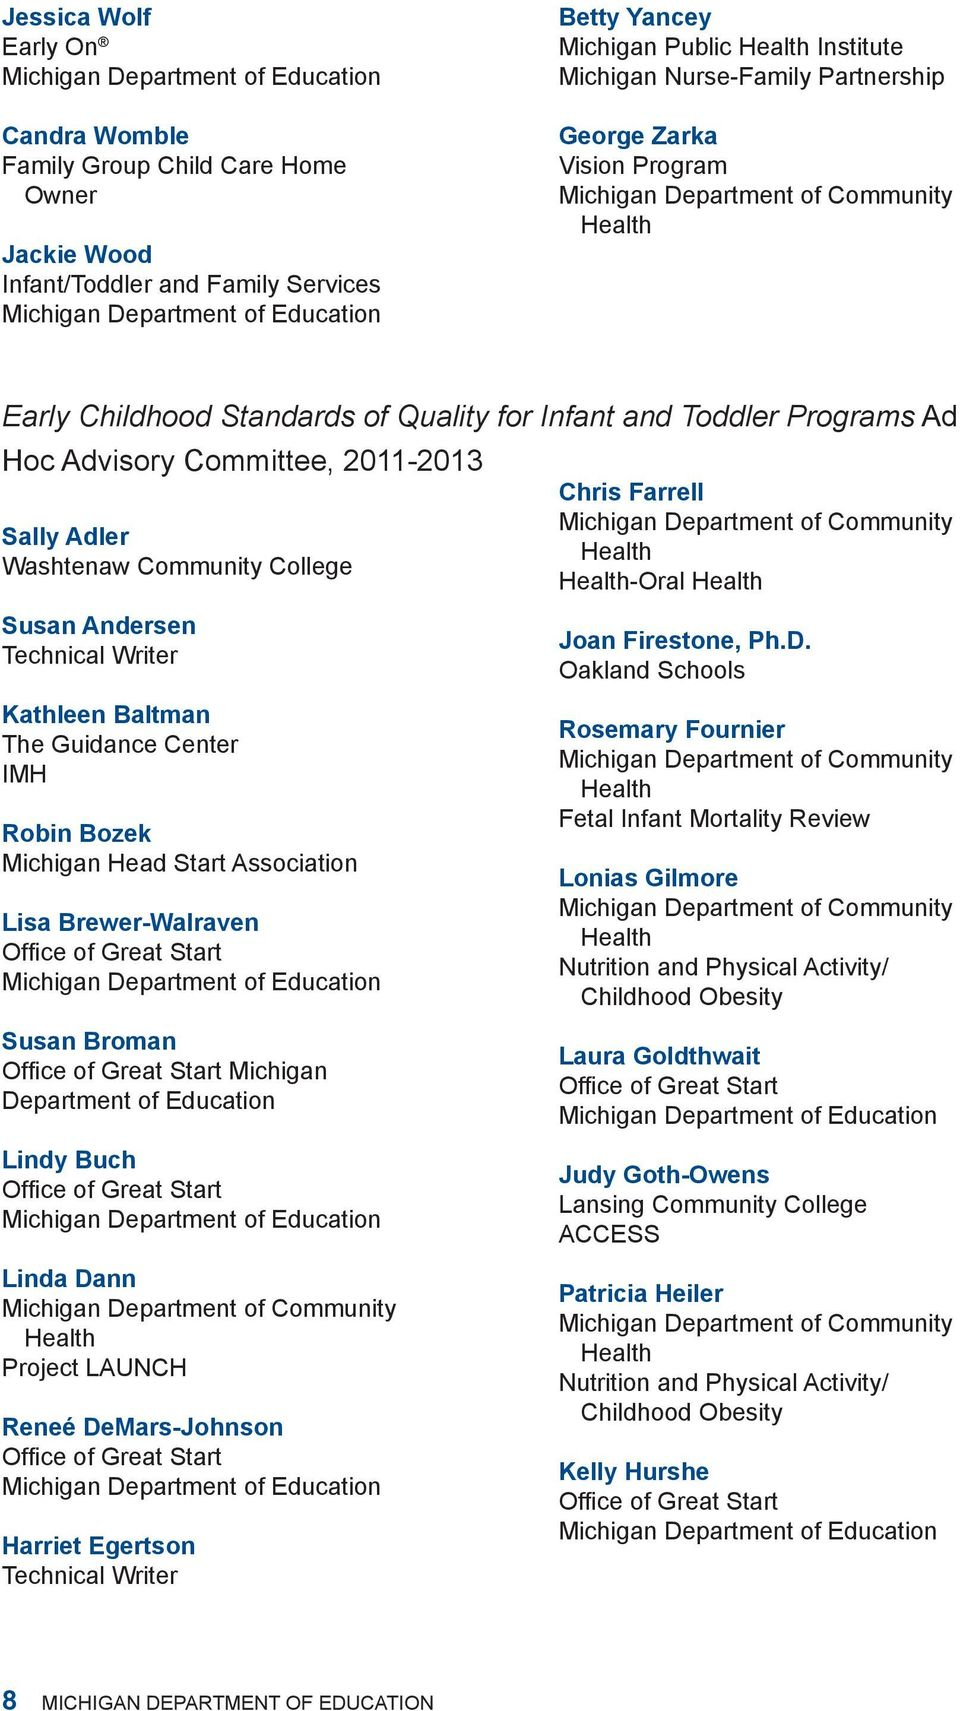 Programs Ad Hoc Advisory Committee, 2011-2013 Chris Farrell Michigan Department of Community Sally Adler Health Washtenaw Community College Health-Oral Health Susan Andersen Technical Writer Kathleen